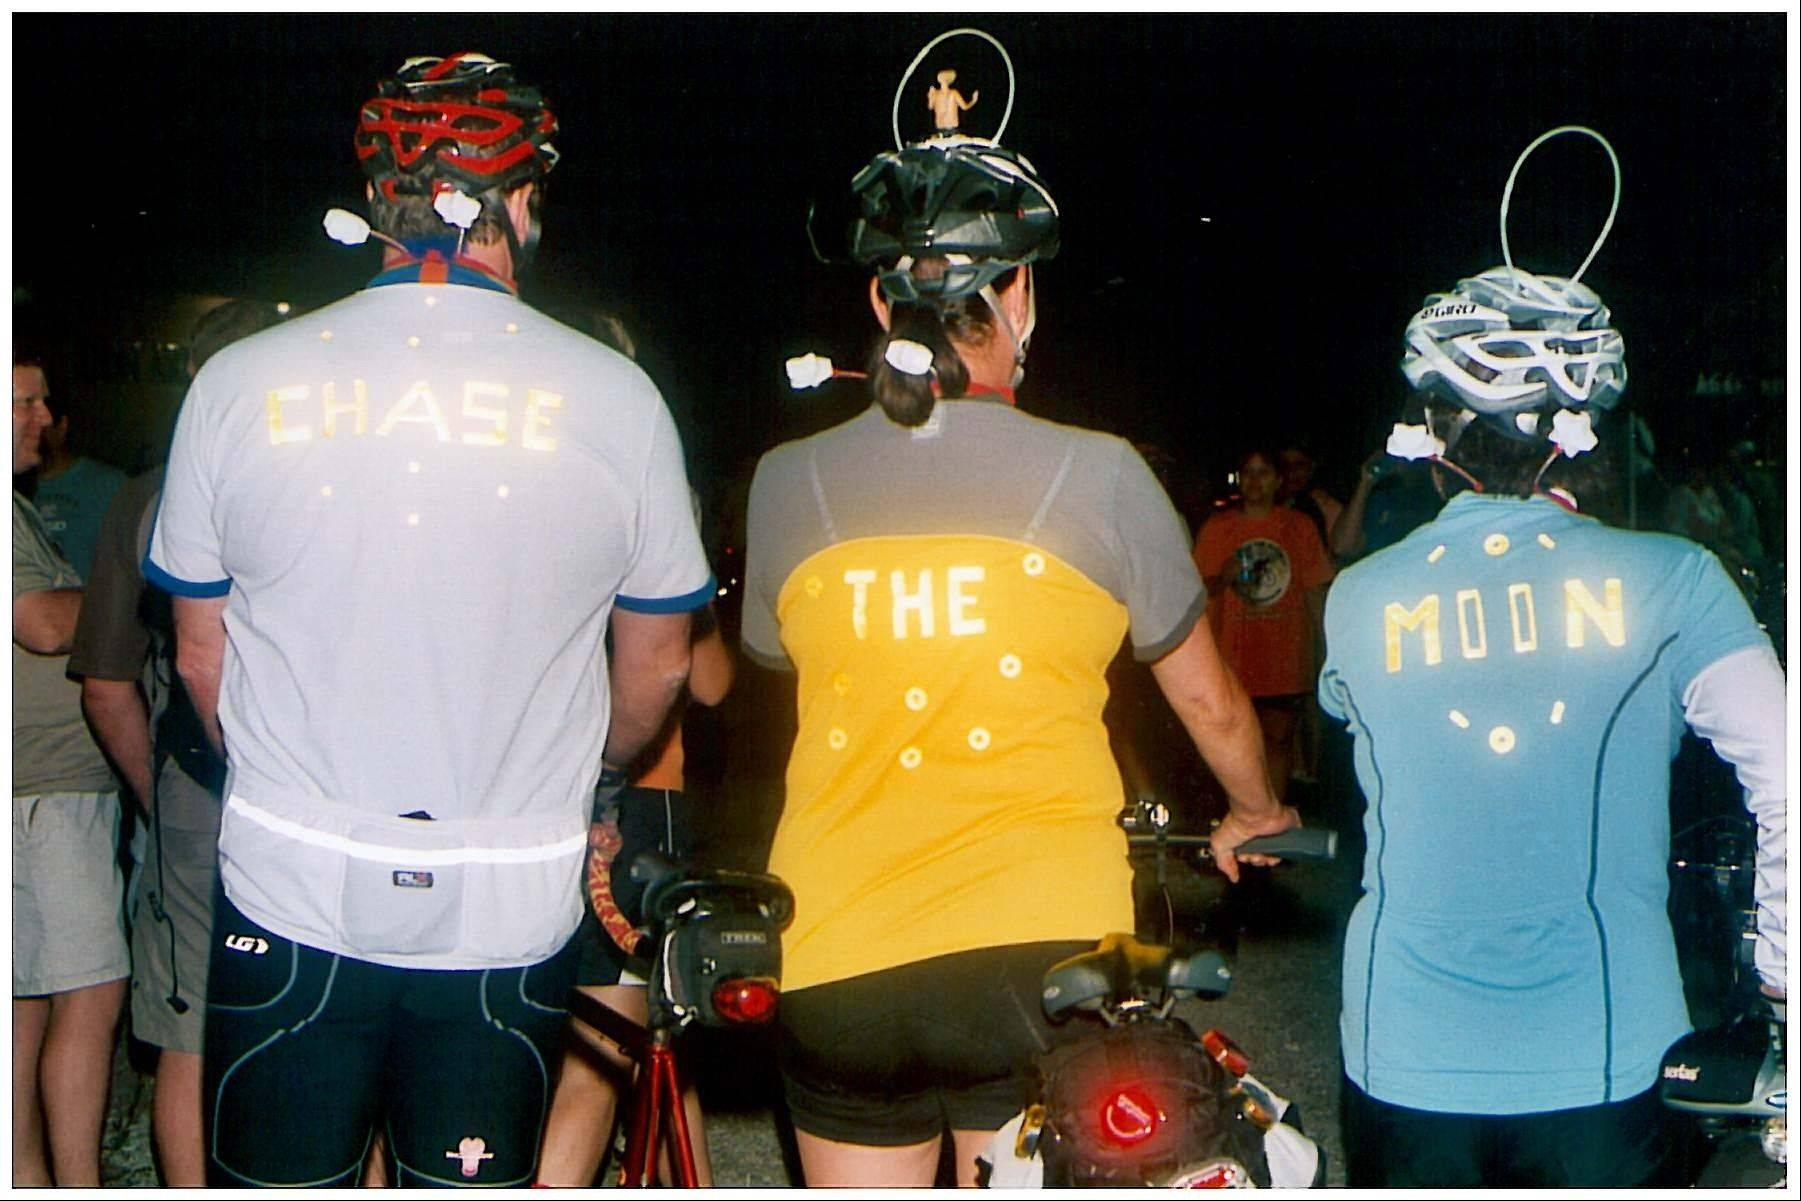 This will be the last year for riders to participate in the Conservation Foundation's Chase the Moon Midnight Bike Ride. The ride will take off at midnight Sunday, July 29, and all proceeds benefit the foundation's preservation and education programs.